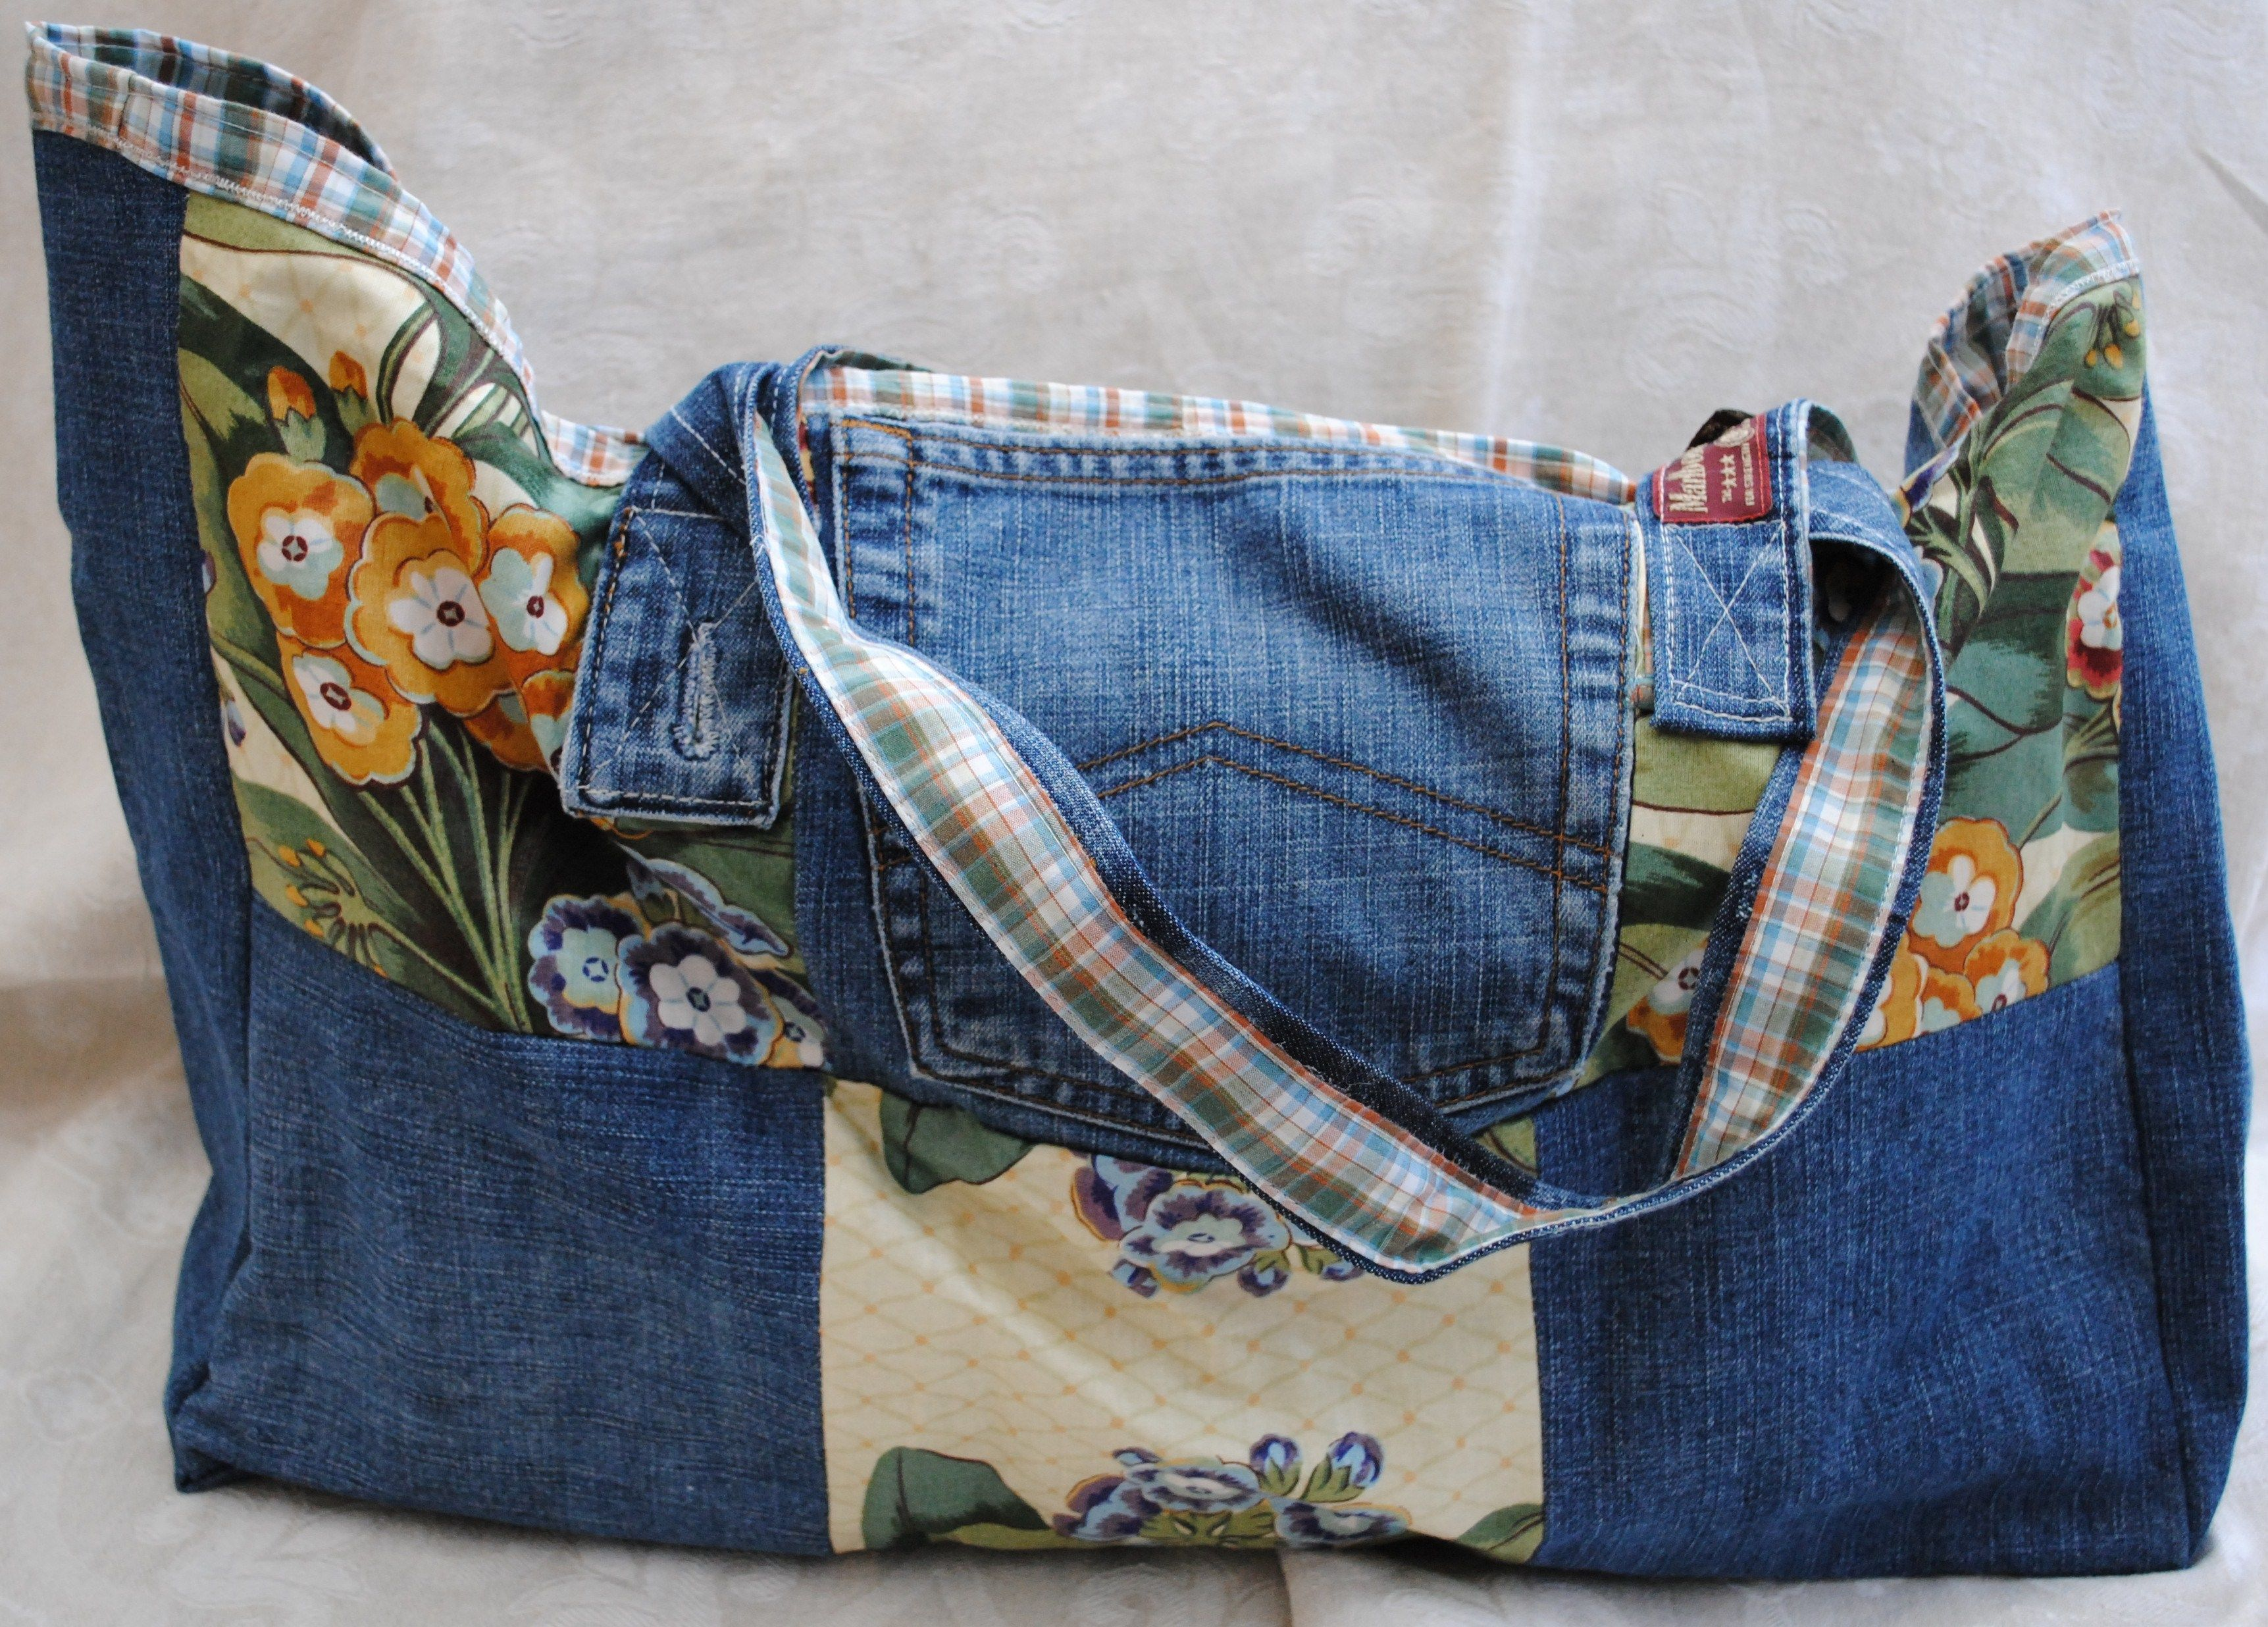 Denim Patchwork Bag, used an old mens shirt for the lining. Adorable ...